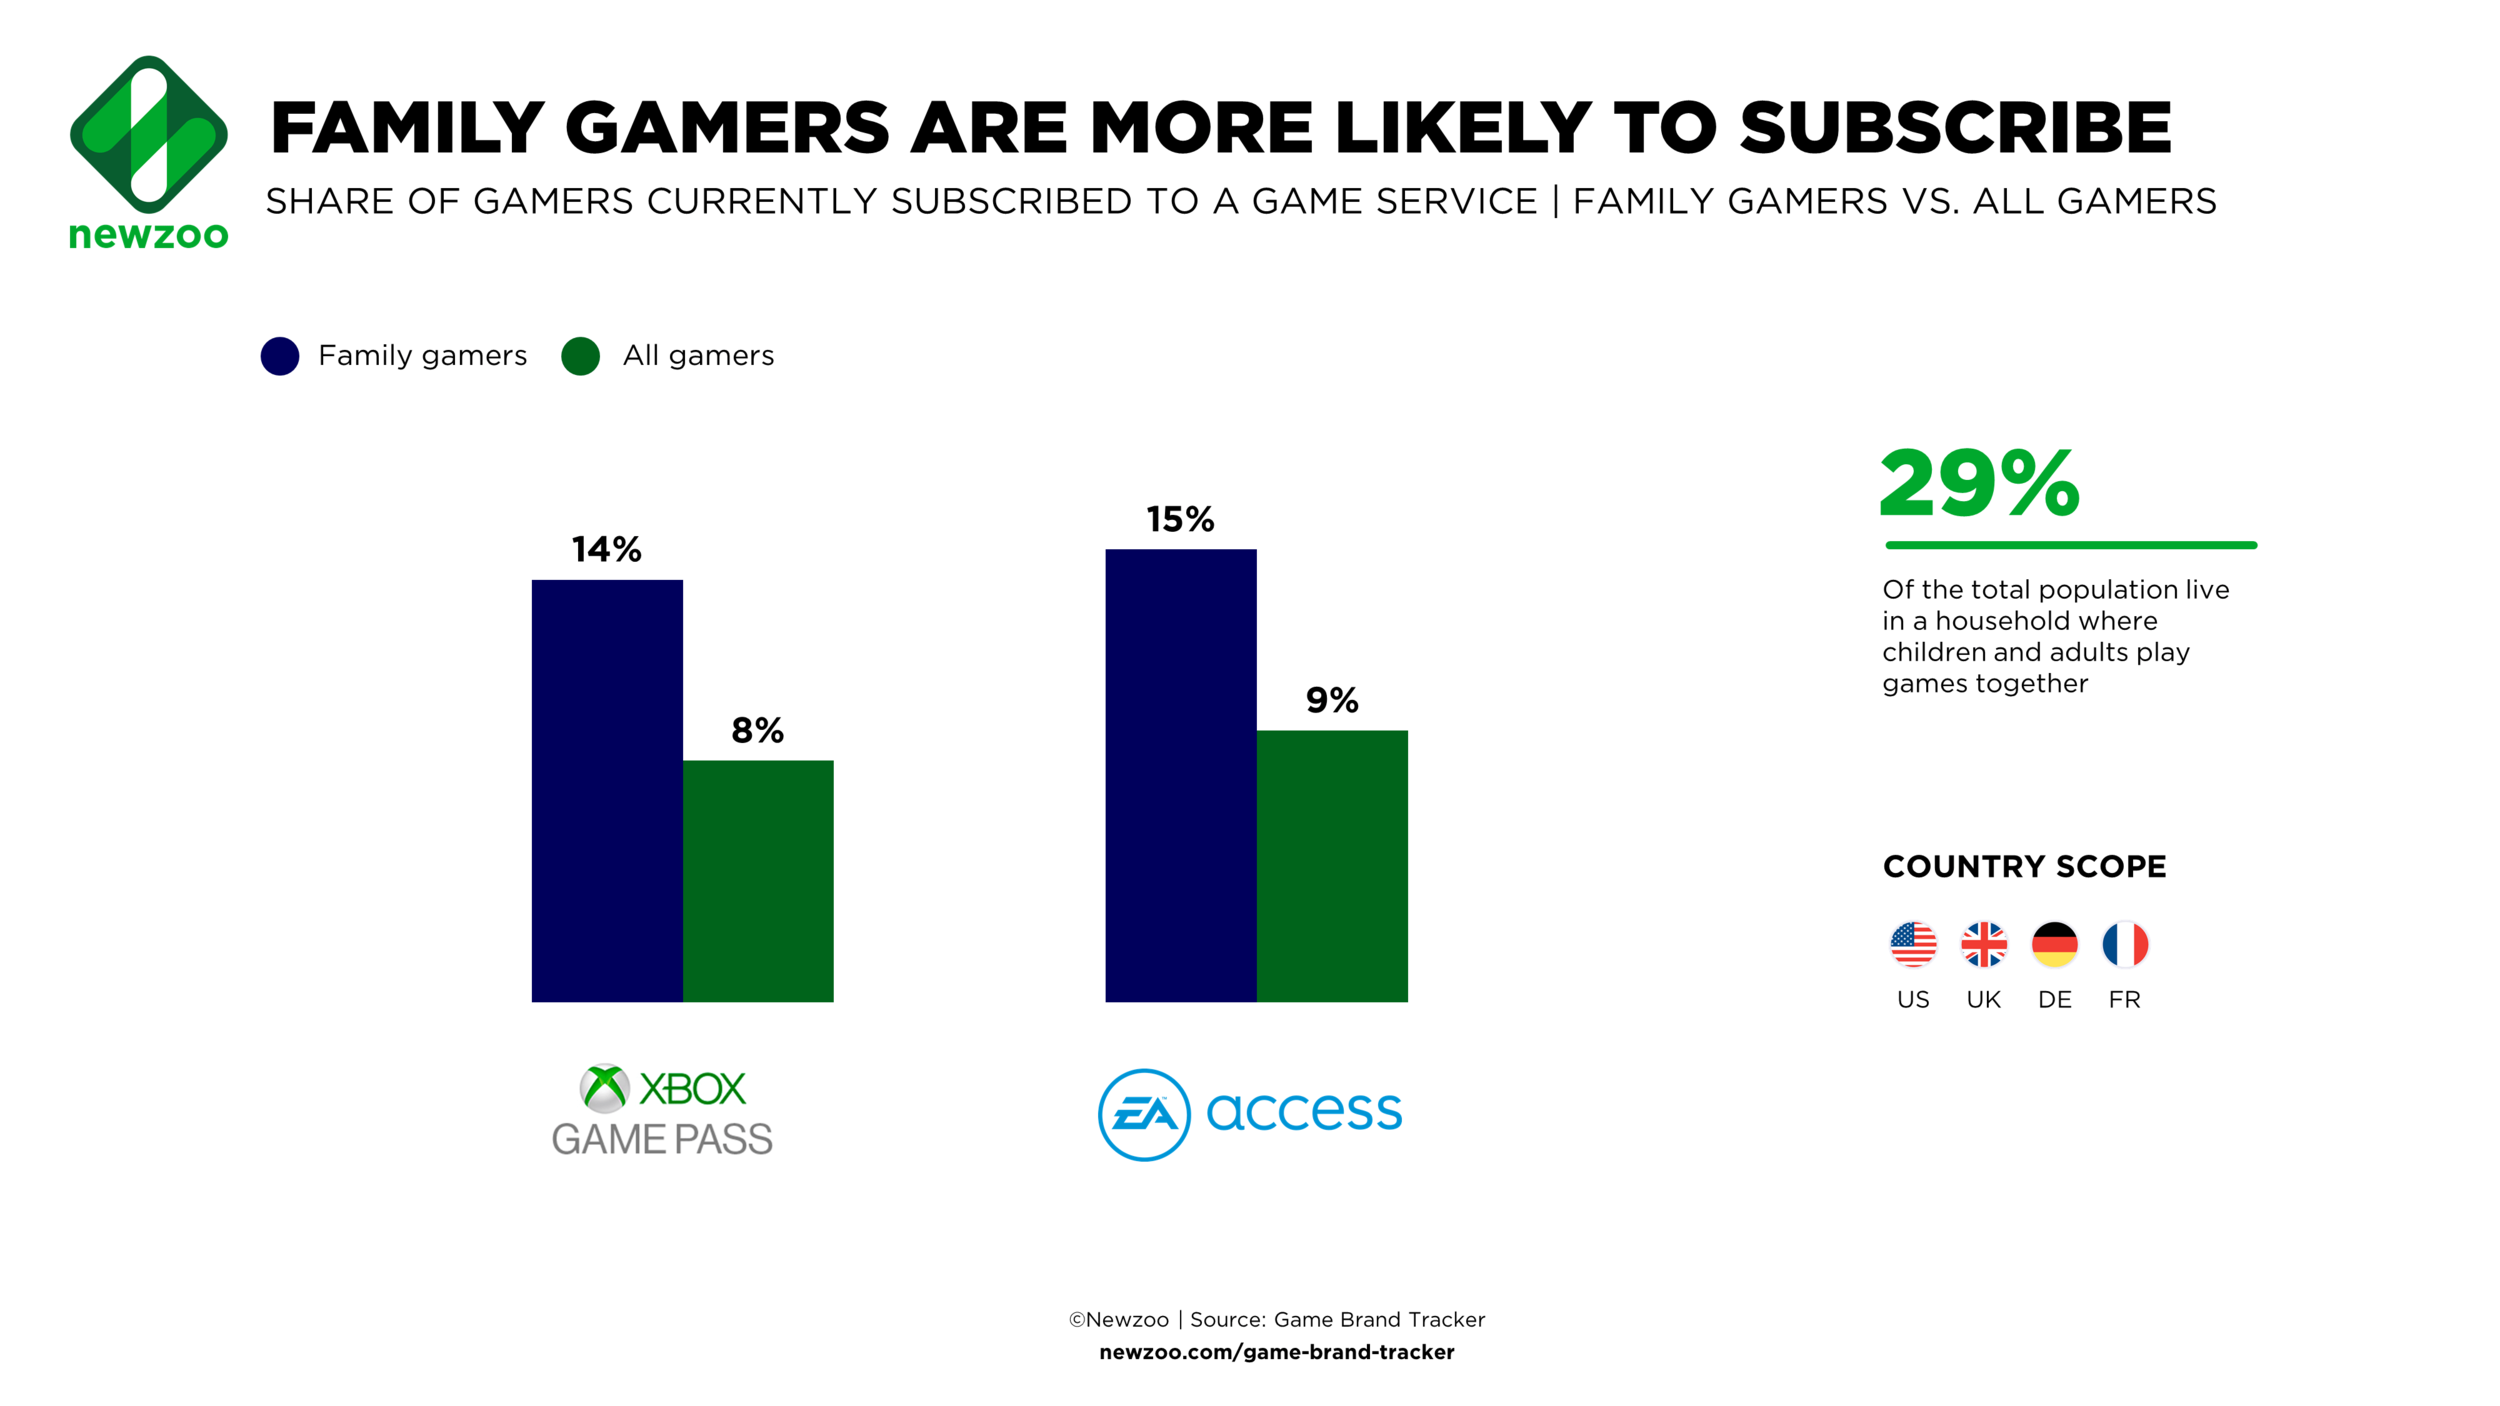 The Xbox Games Pass and EA Access Subscription services are much more popular with families.